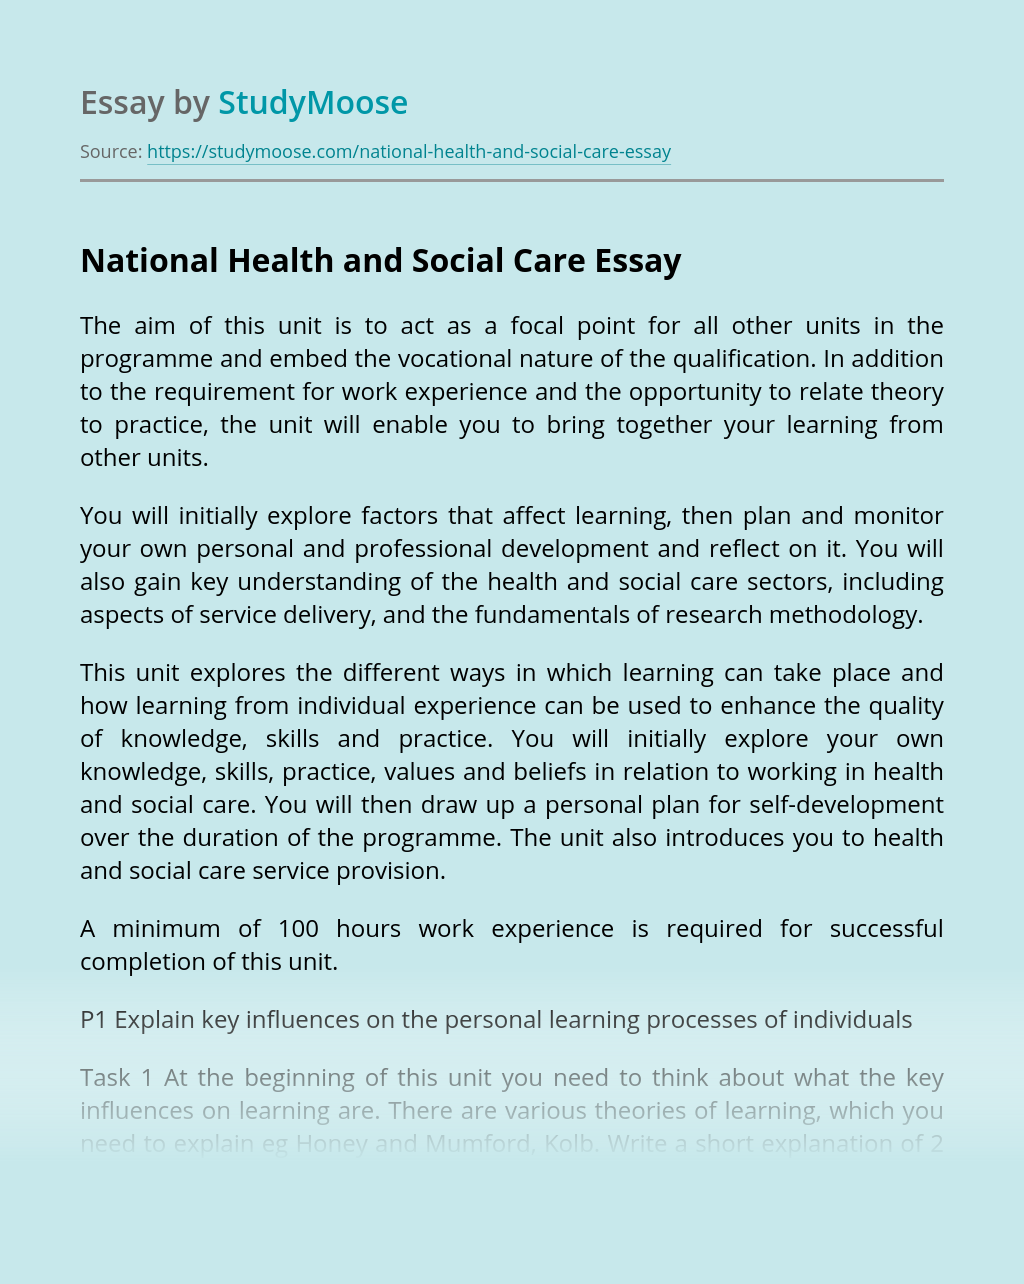 National Health and Social Care